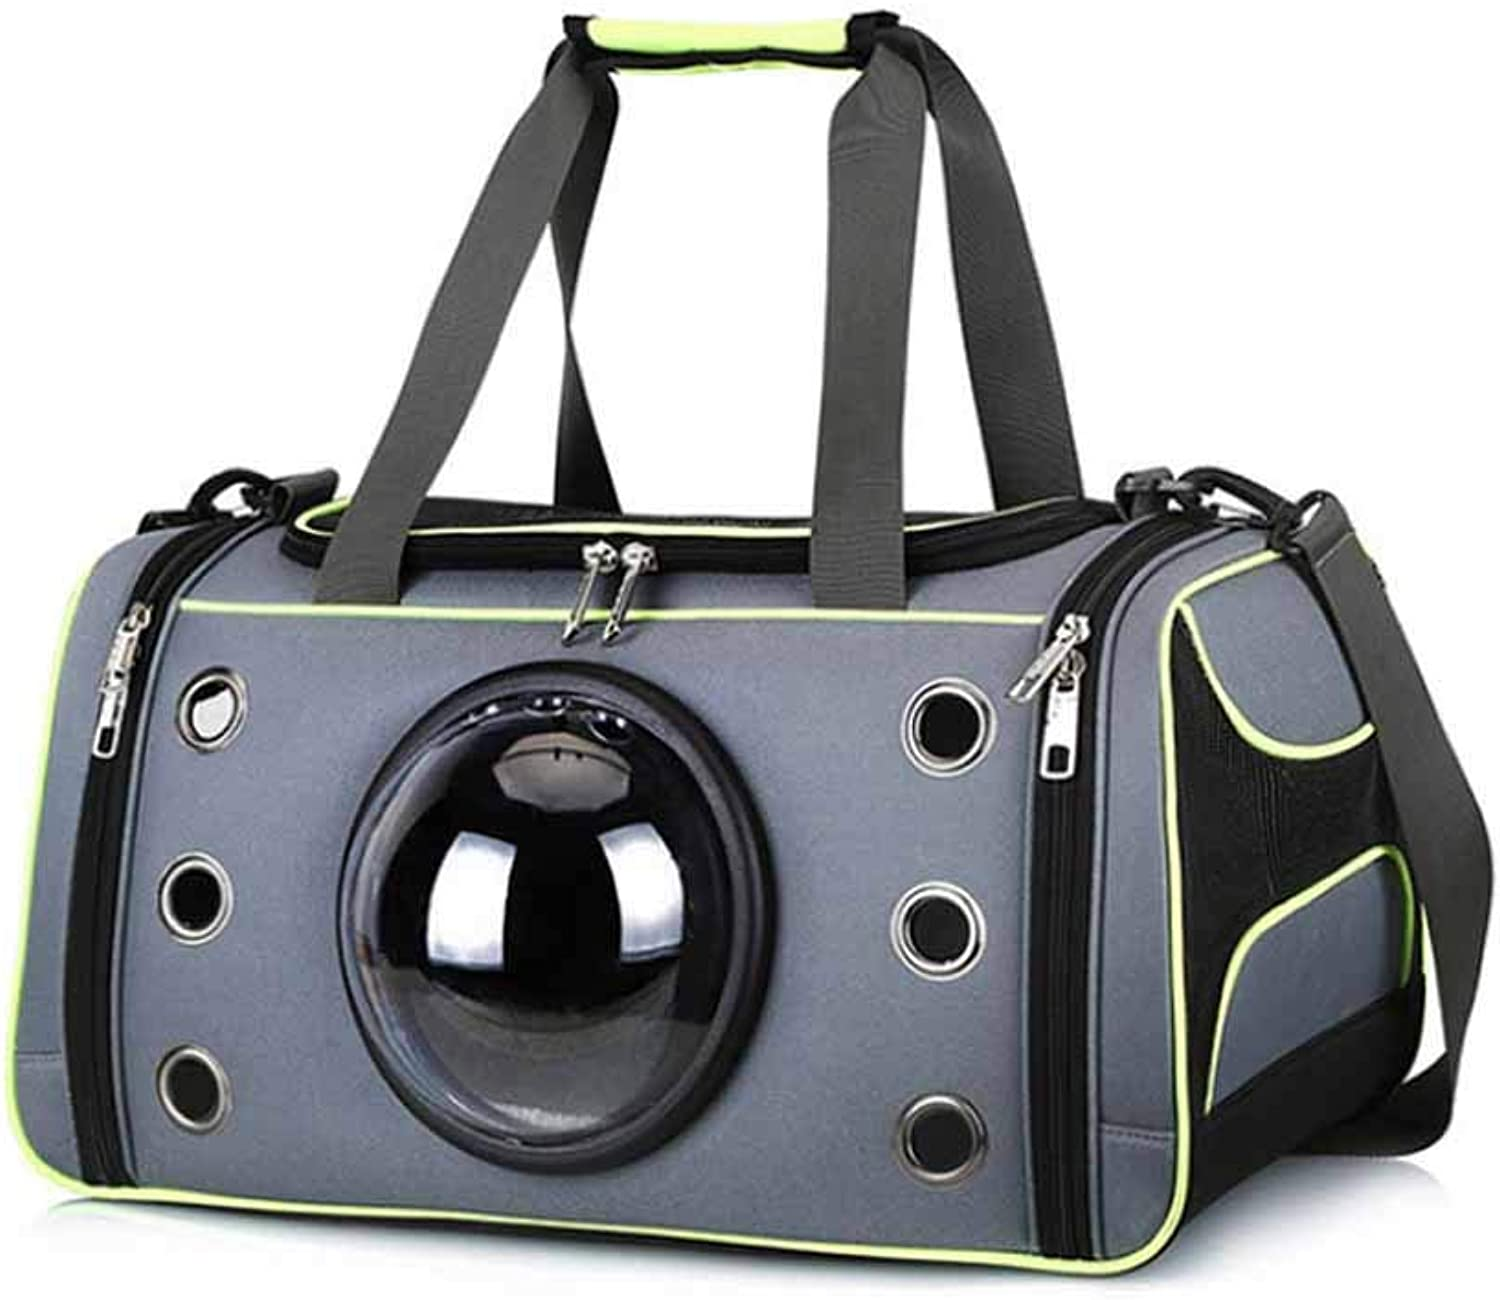 ACLBB Pet fluorescent handbag, portable ventilated space capsule pet backpack, carrying cats, dogs,M